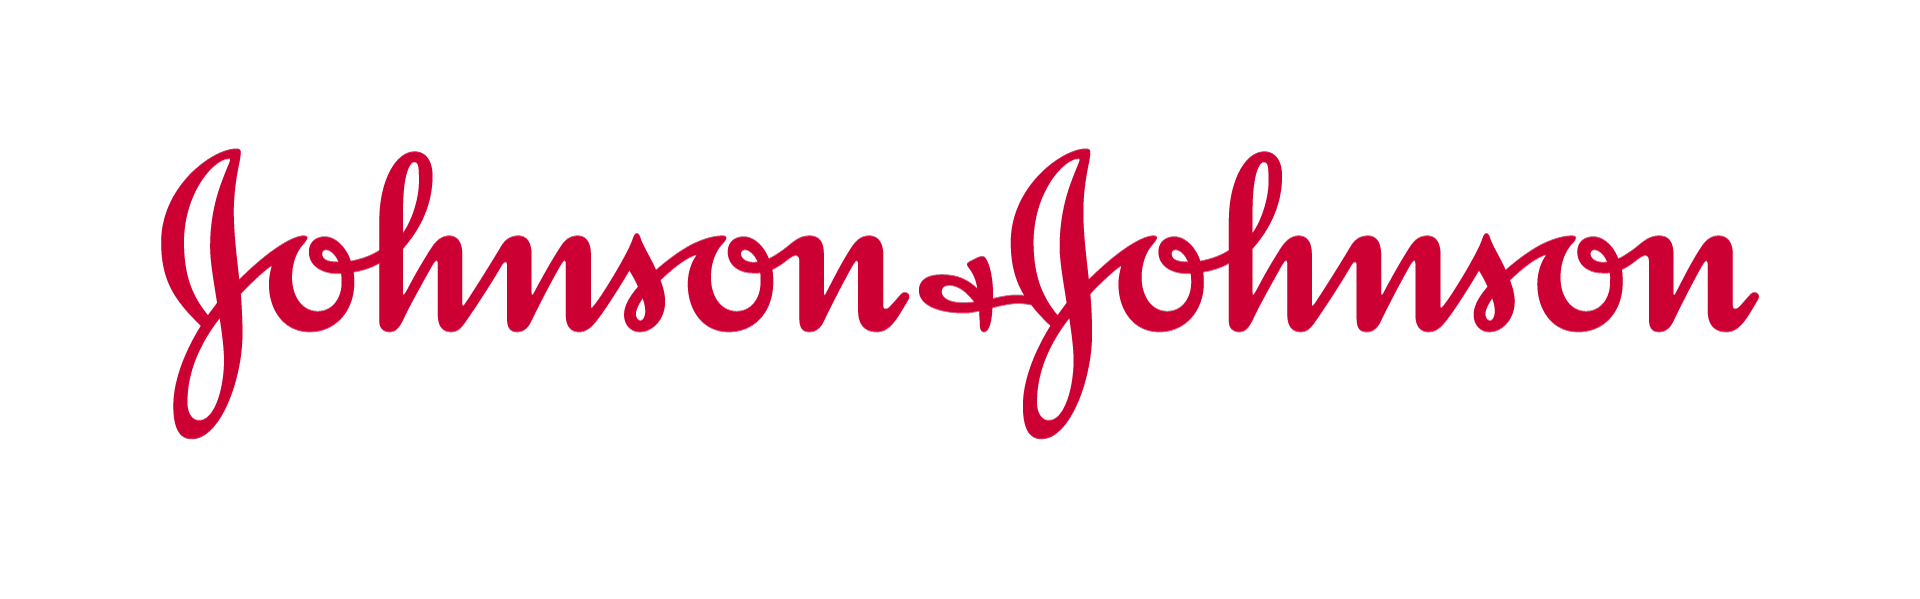 jnj-logo-signature-rgb-red-trans